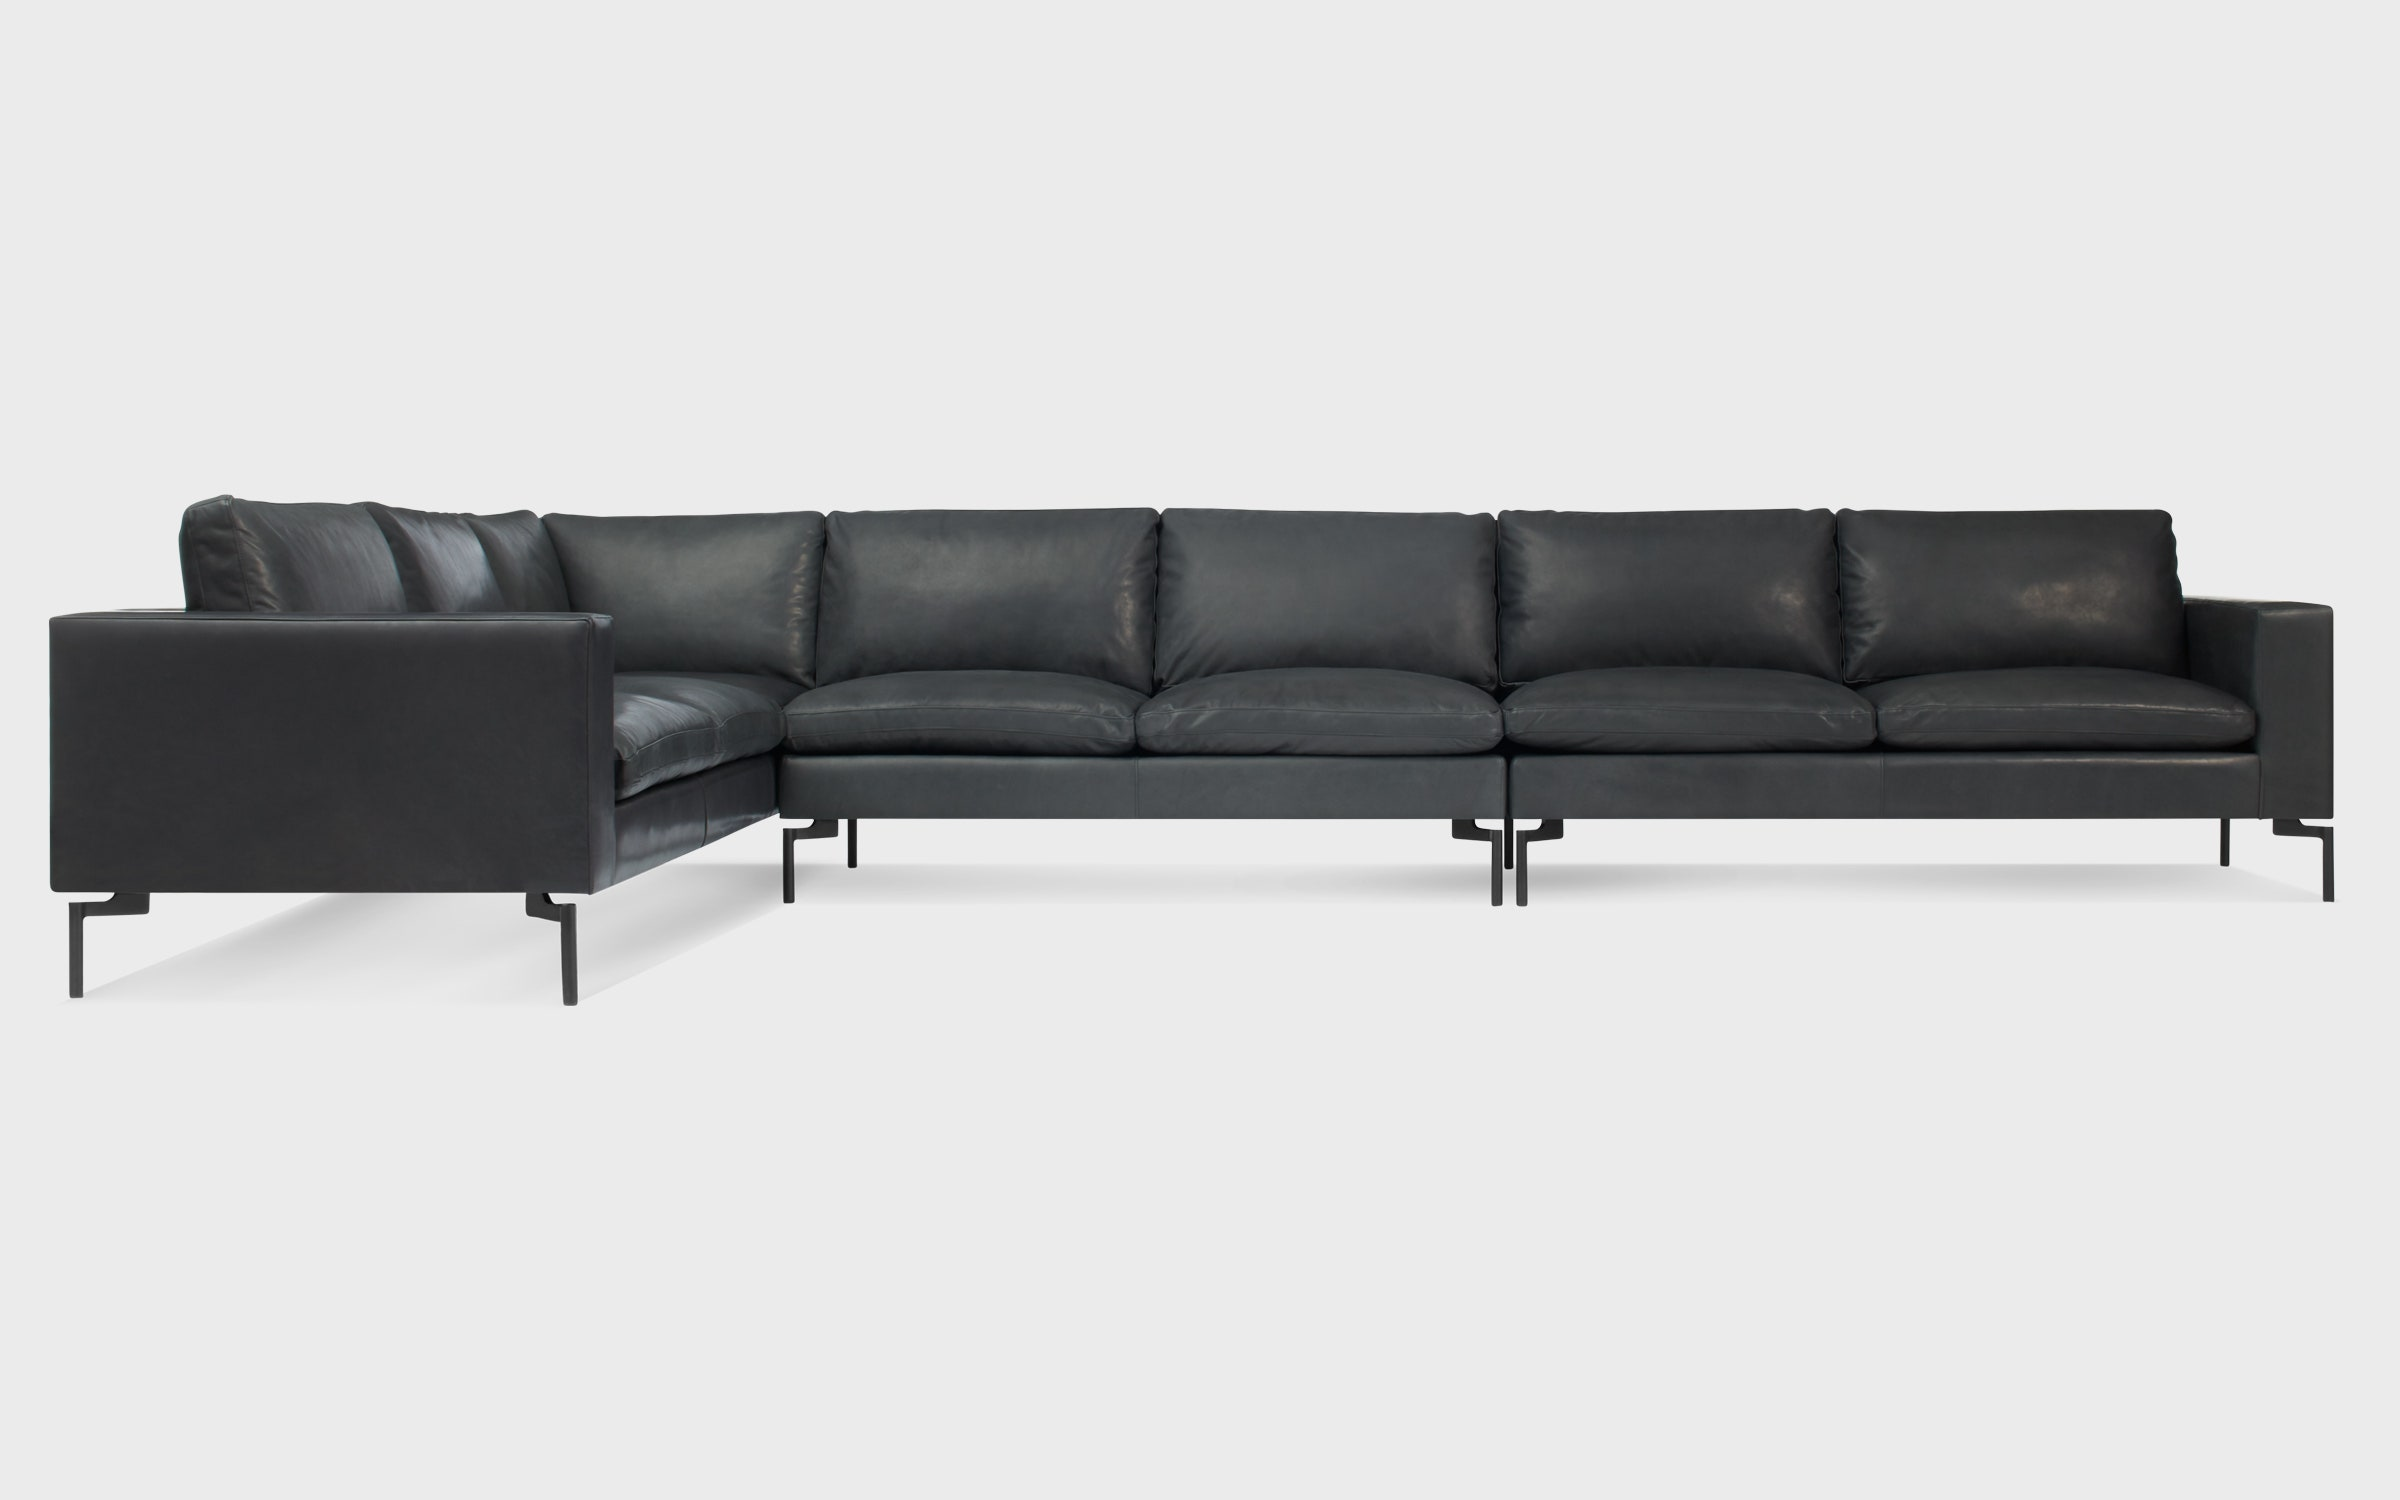 New Standard Left Leather Sectional Sofa - Large